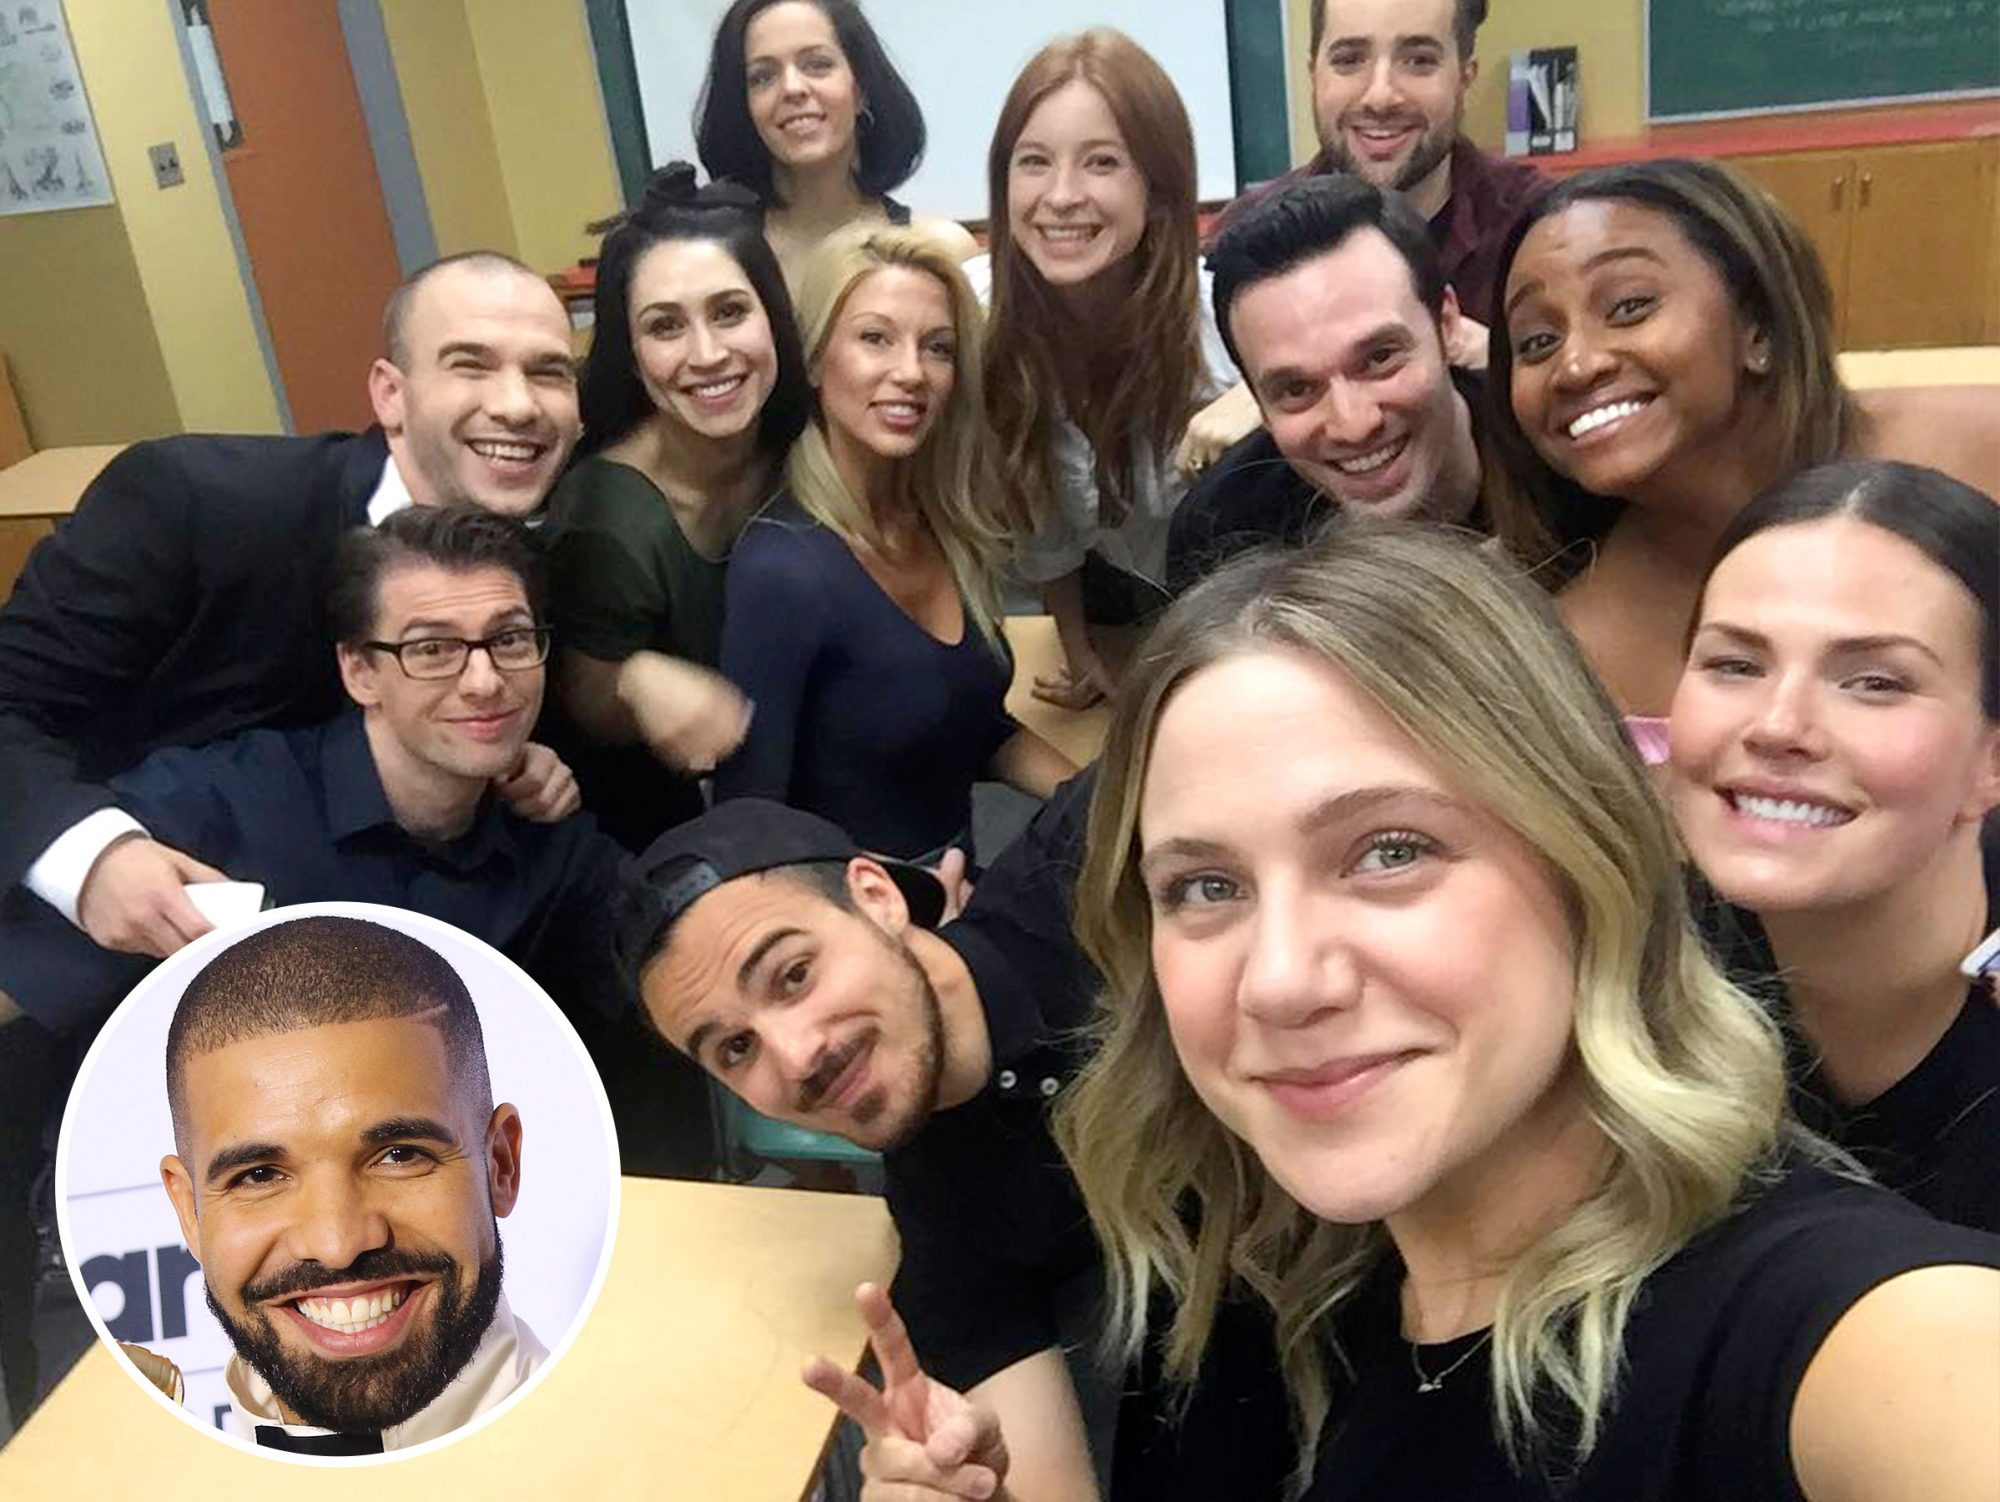 """Drake is the gift that keeps on giving. First, he handed out nearly $1 million in cash to strangers, schools and grocery store patrons in Miami for his """"God's Plan"""" music video. Now, he's given us the Degrassi reunion we didn't know we'd been waiting for in his new video, """"I'm Upset.""""                             The clip features Drake and his former faux classmates rolling up to theDegrassihalls for the class of 2007's eleventh reunion.The video ends with the show's catchy theme song, including new shots of the cast spliced with archive footage from the original show.                             Former co-star Lauren Collins, who played queen bee Paige Michalchuk on the show, shared a behind-the-scenes snap of the happy reunion on Instagram."""